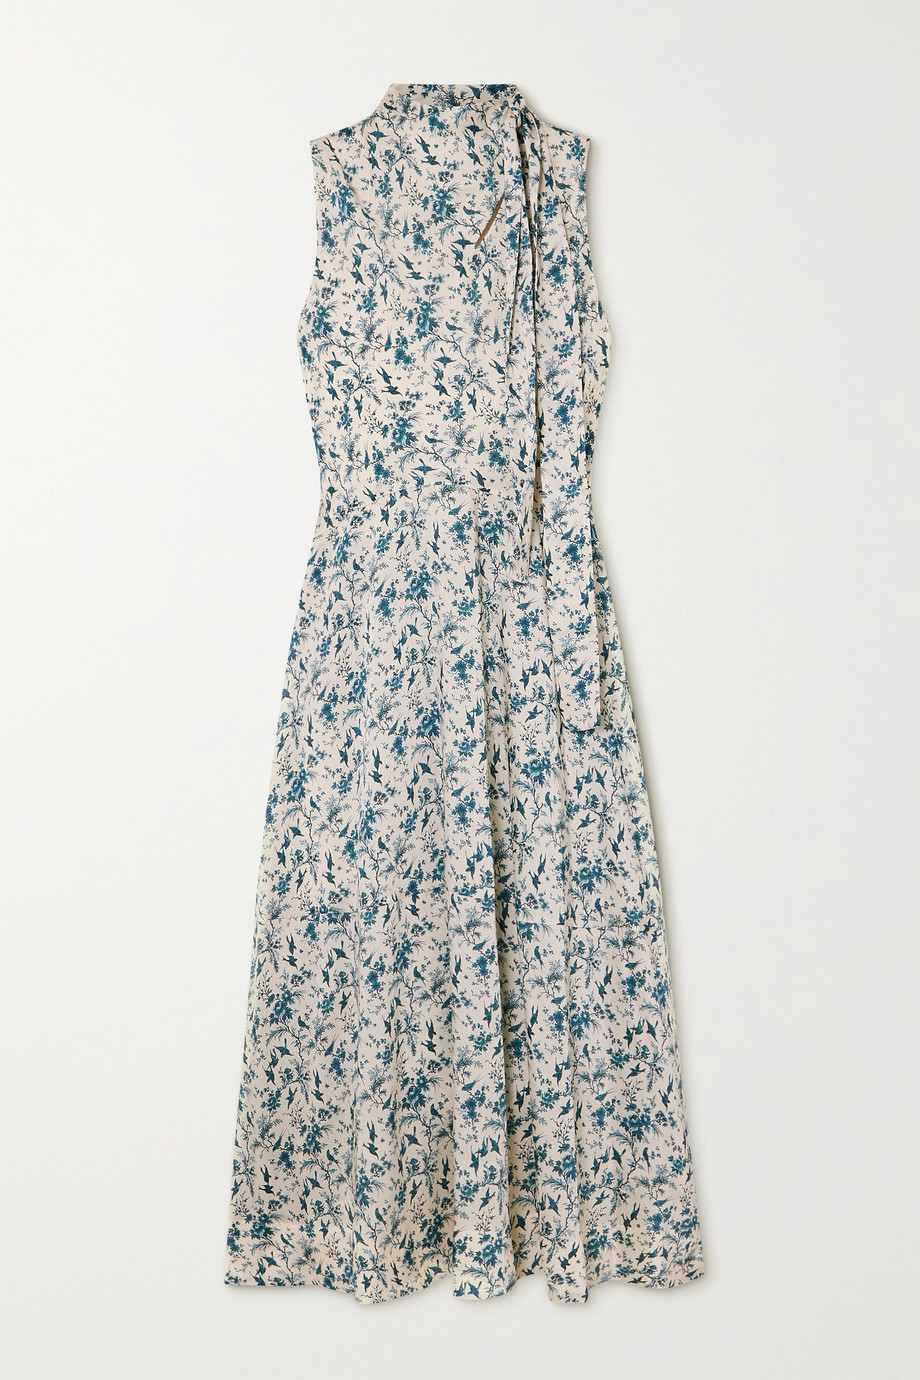 Victoria, Victoria Beckham Tie-neck printed recycled twill dress